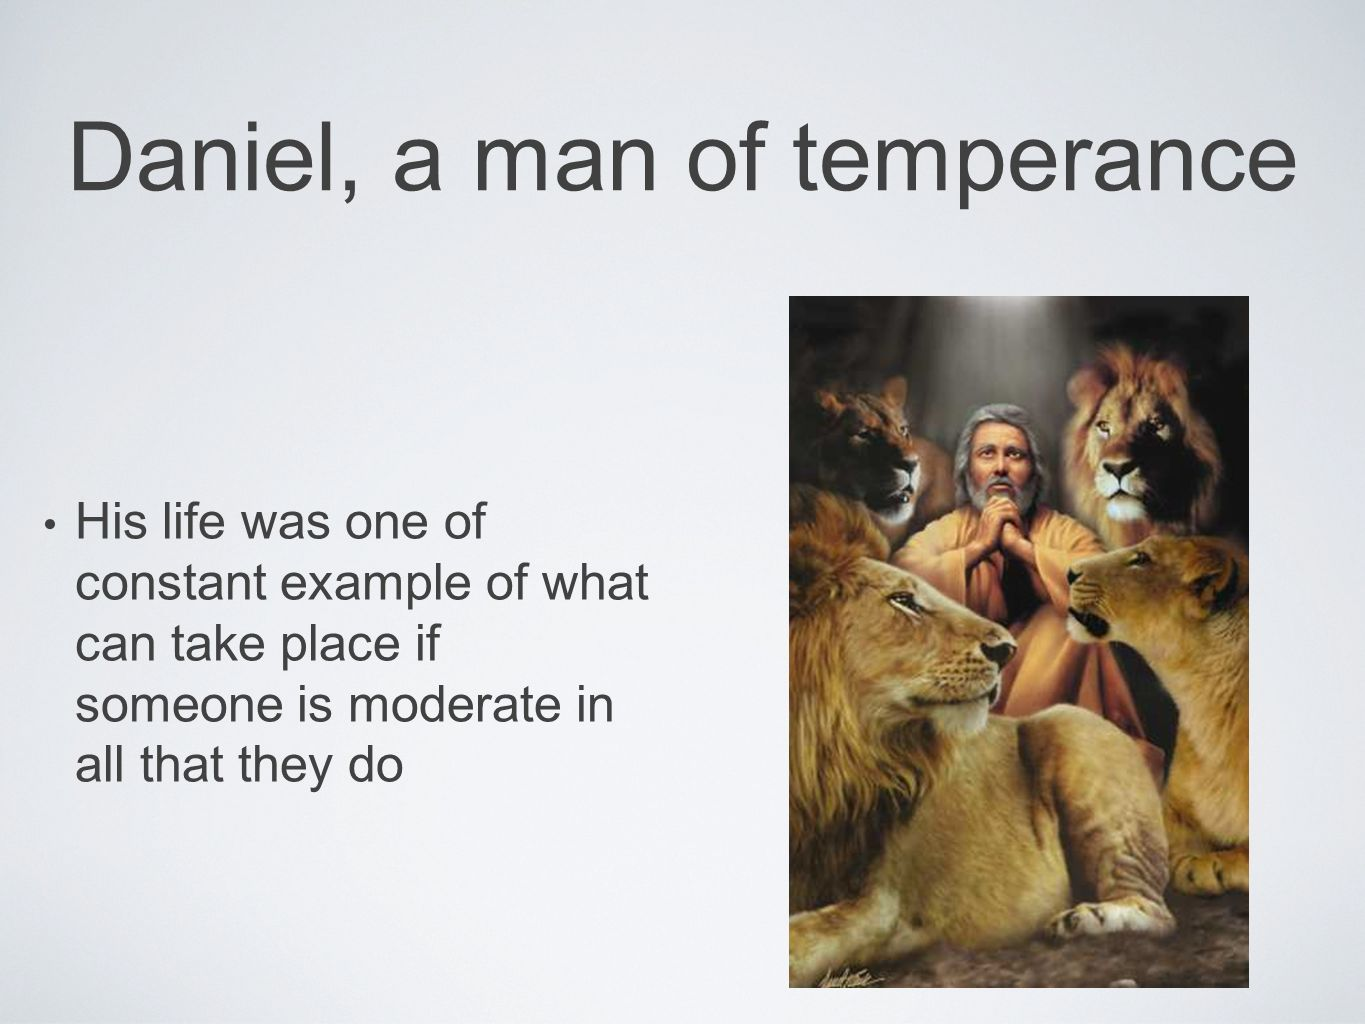 Daniel, a man of temperance His life was one of constant example of what can take place if someone is moderate in all that they do